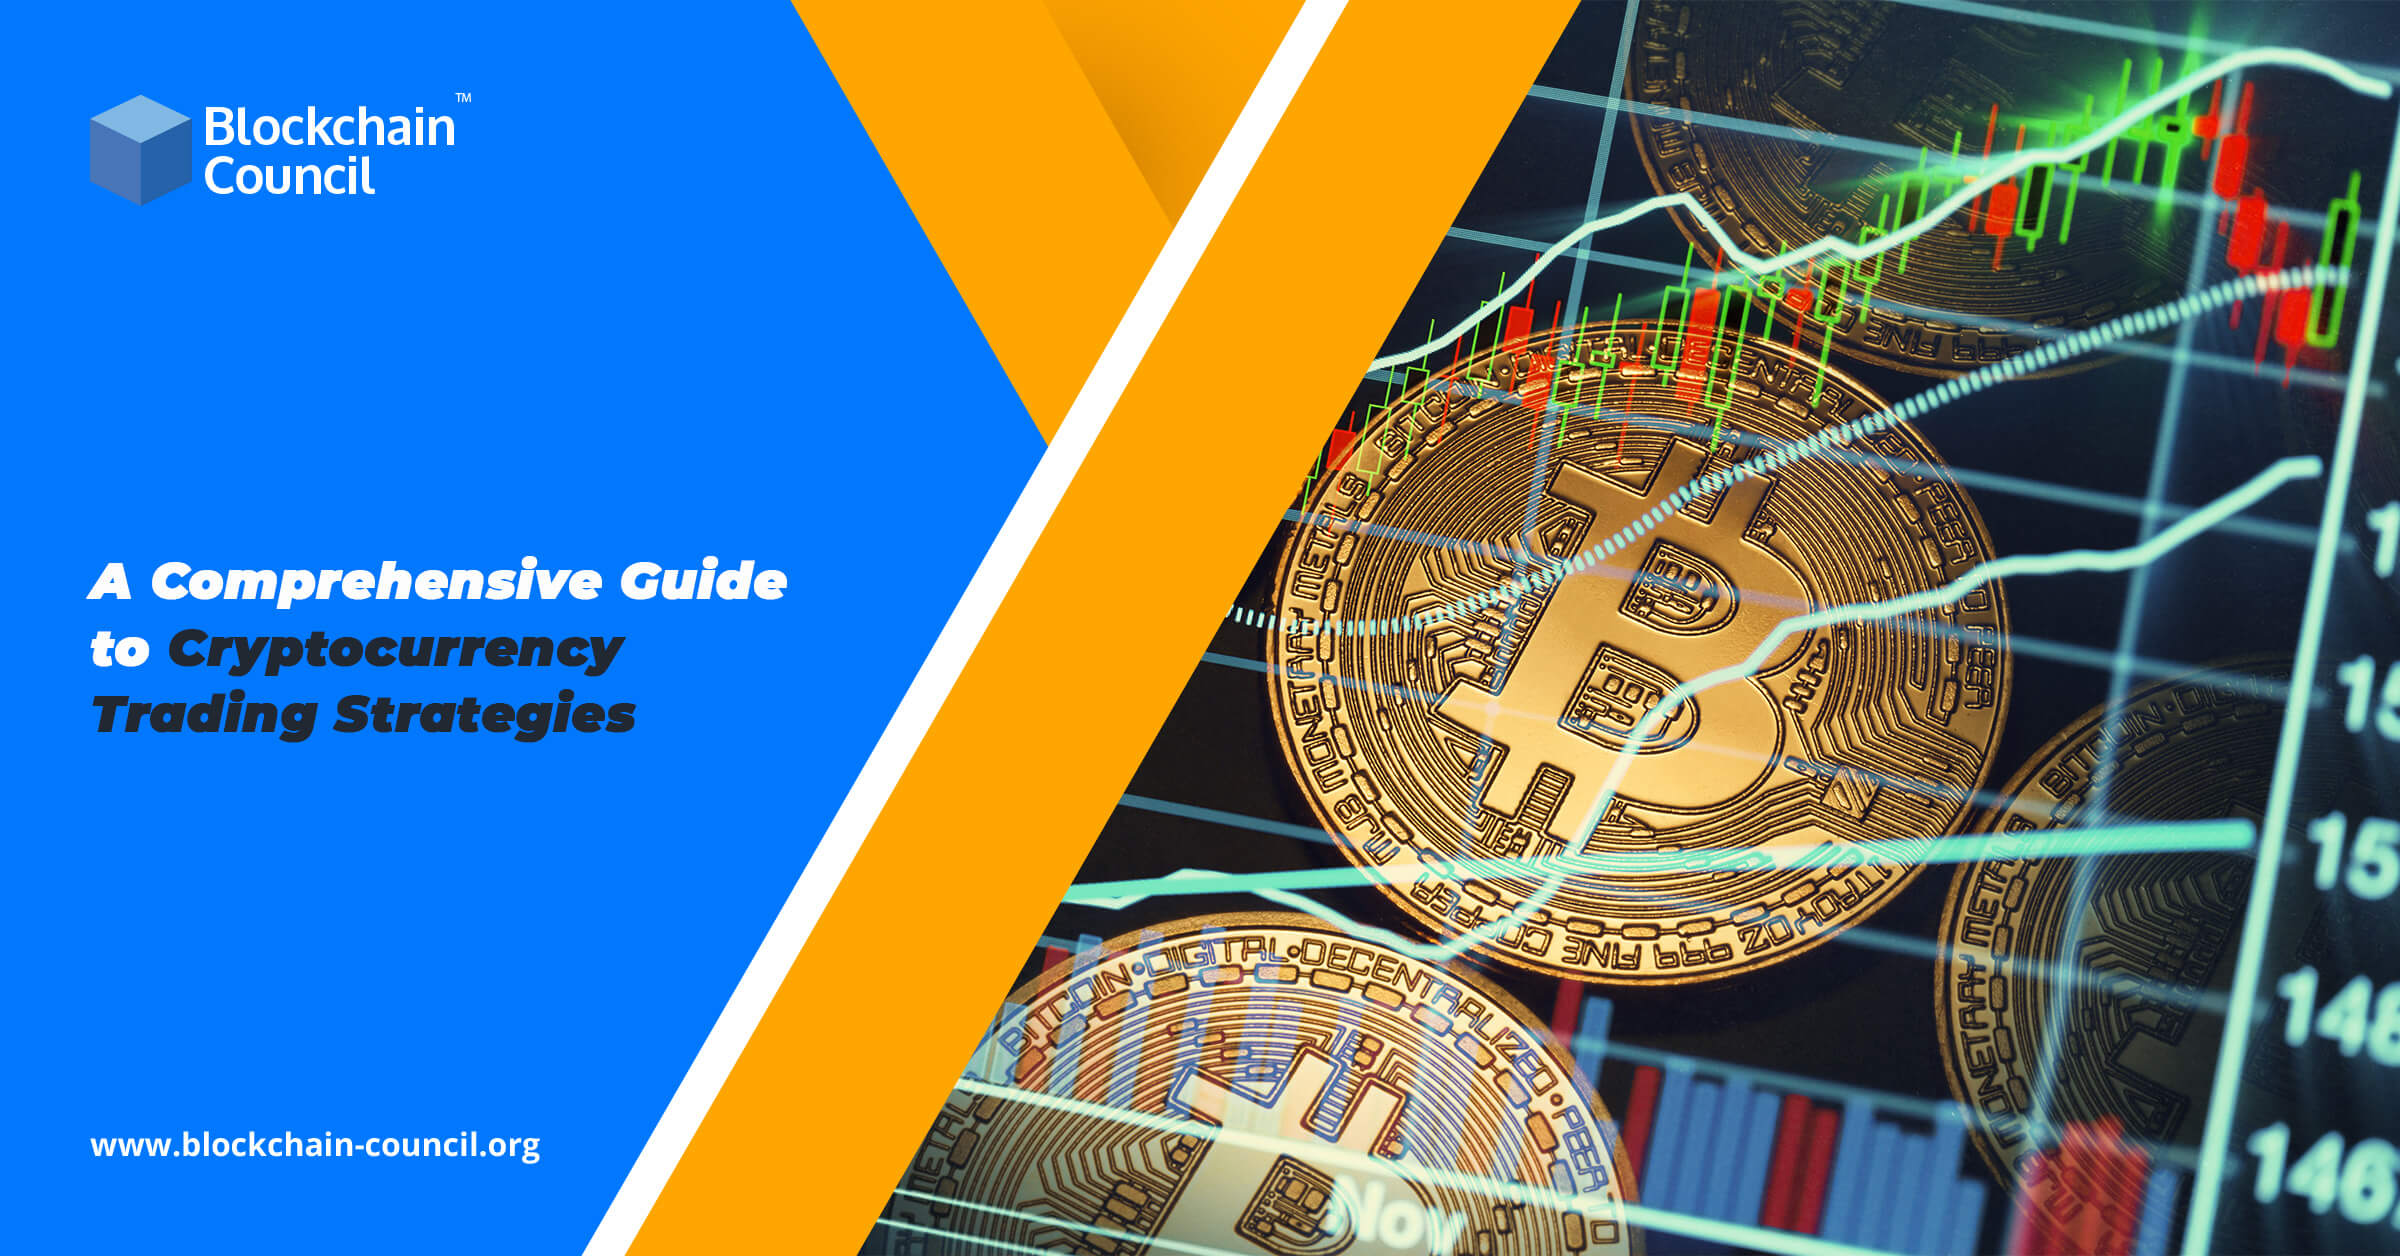 A Comprehensive Guide to Cryptocurrency Trading Strategies